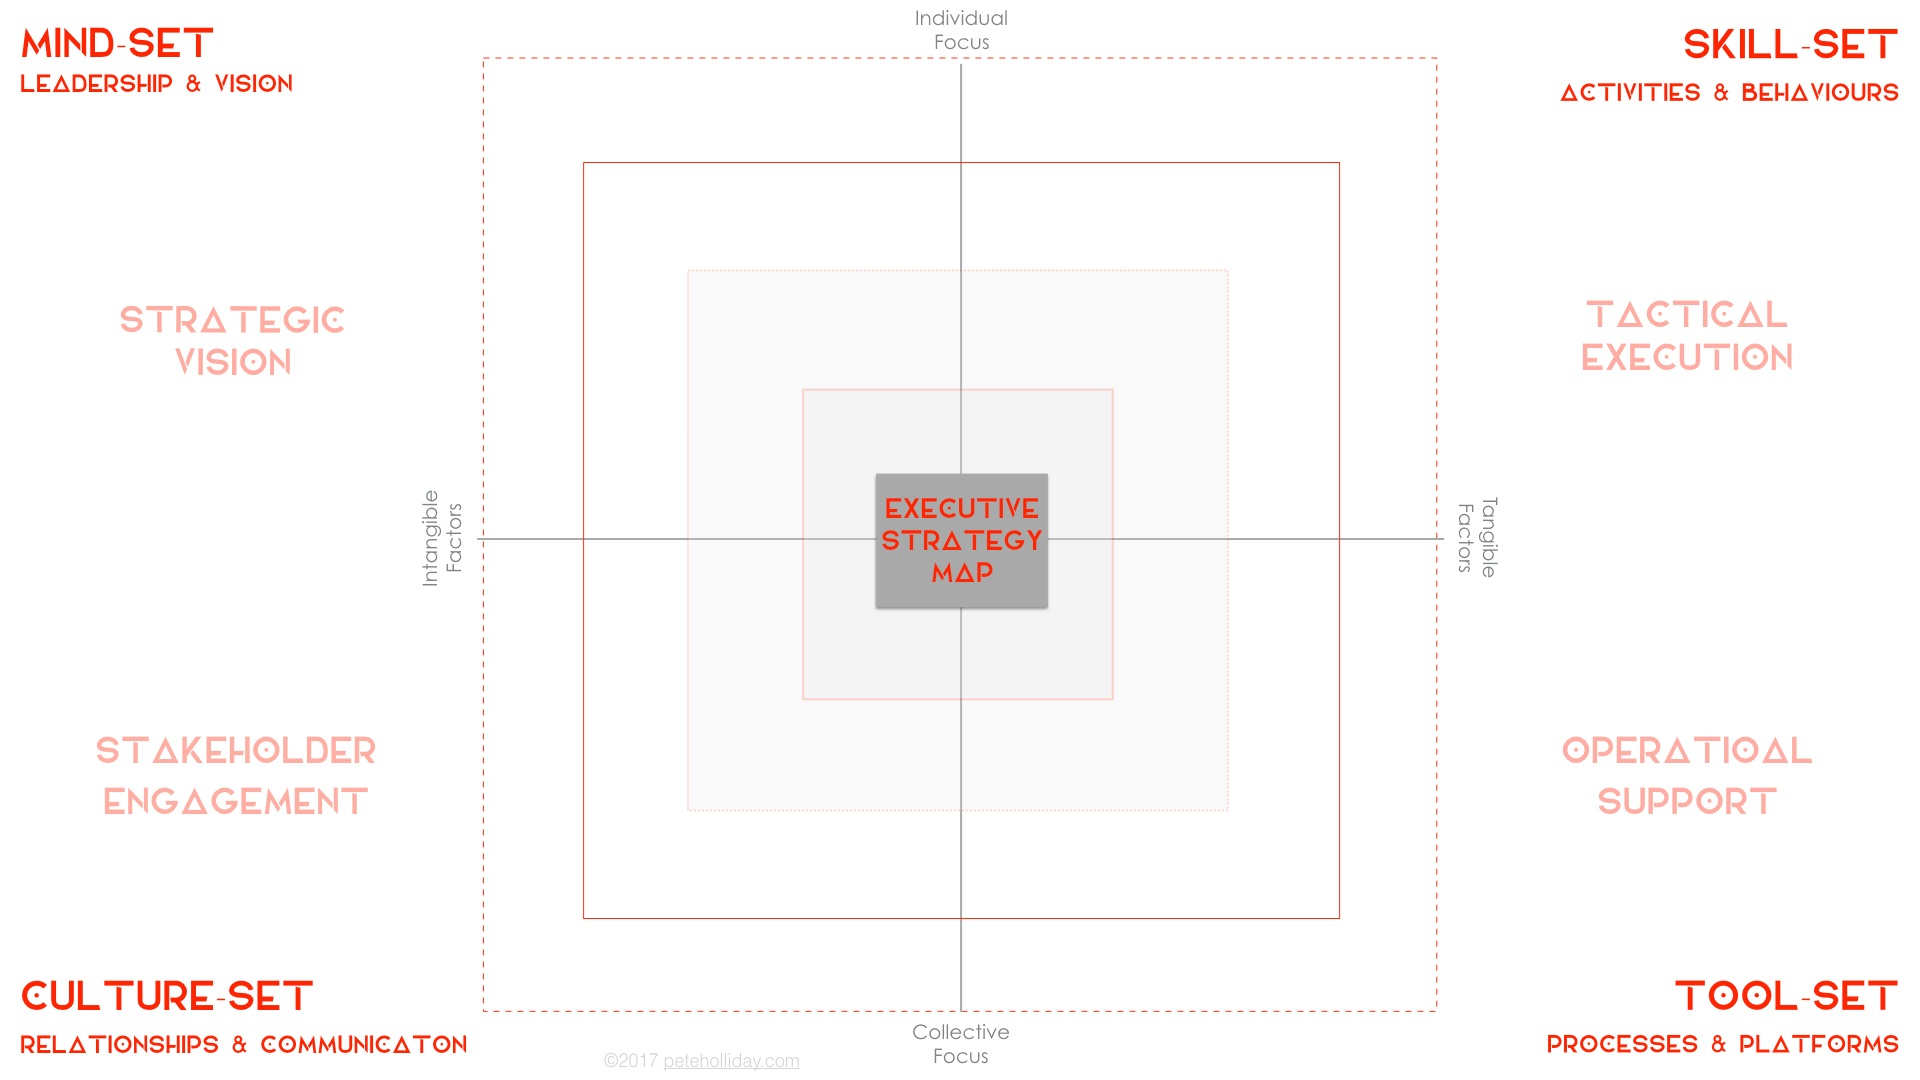 THE EXECUTIVE STRATEGY MAP